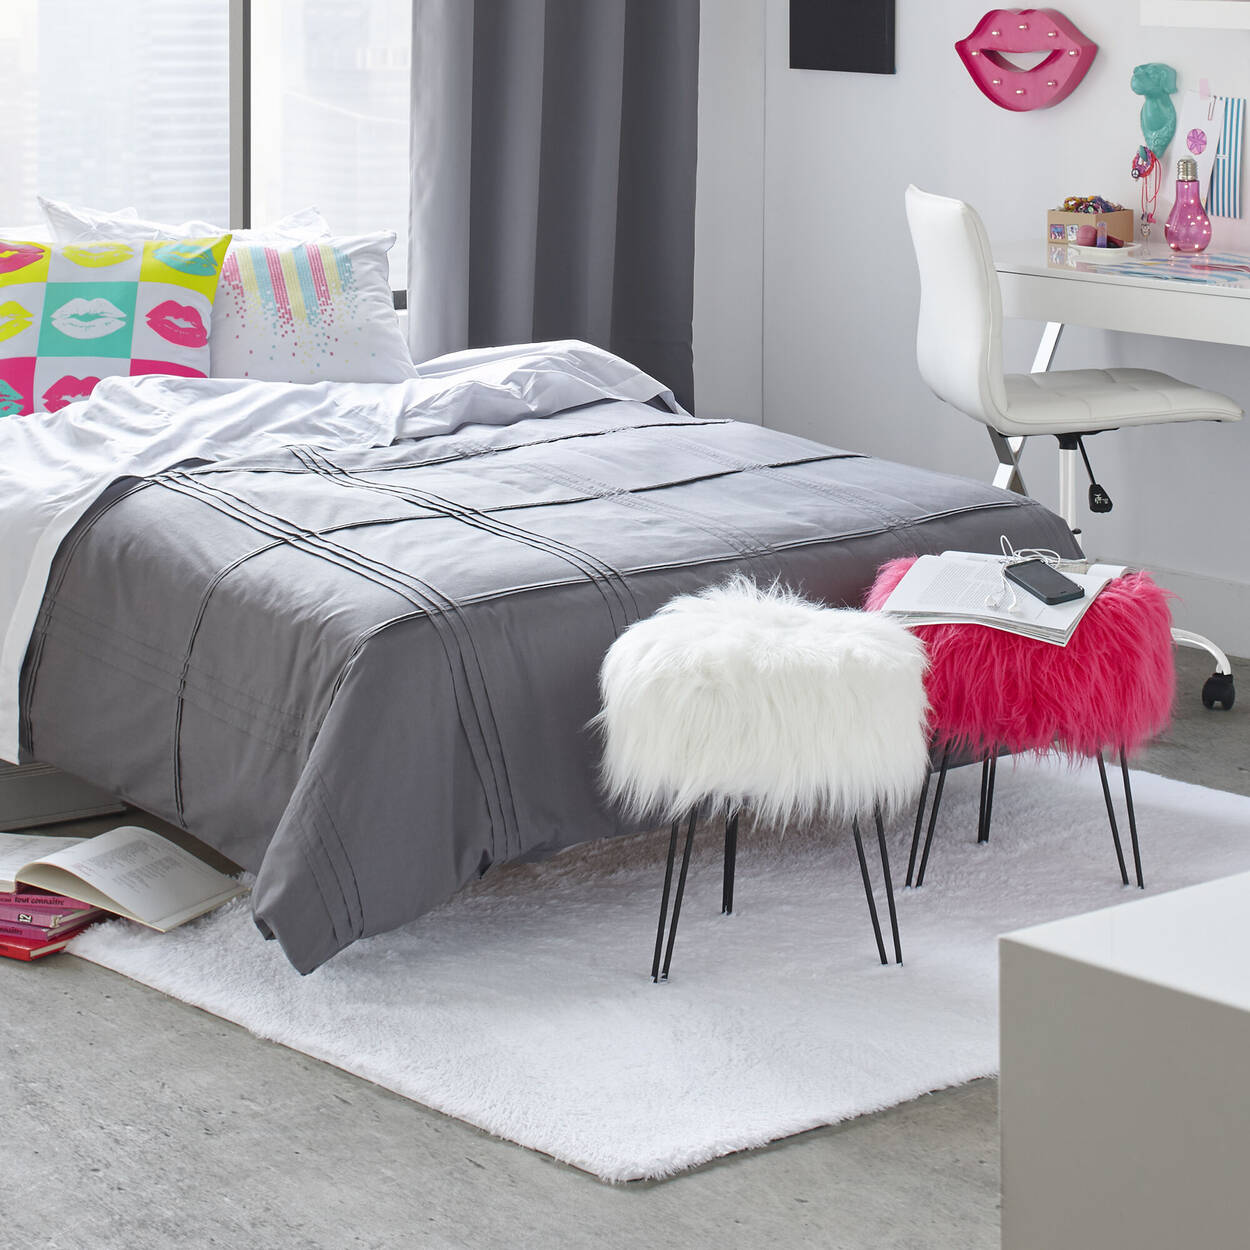 Furry Collection - Rug